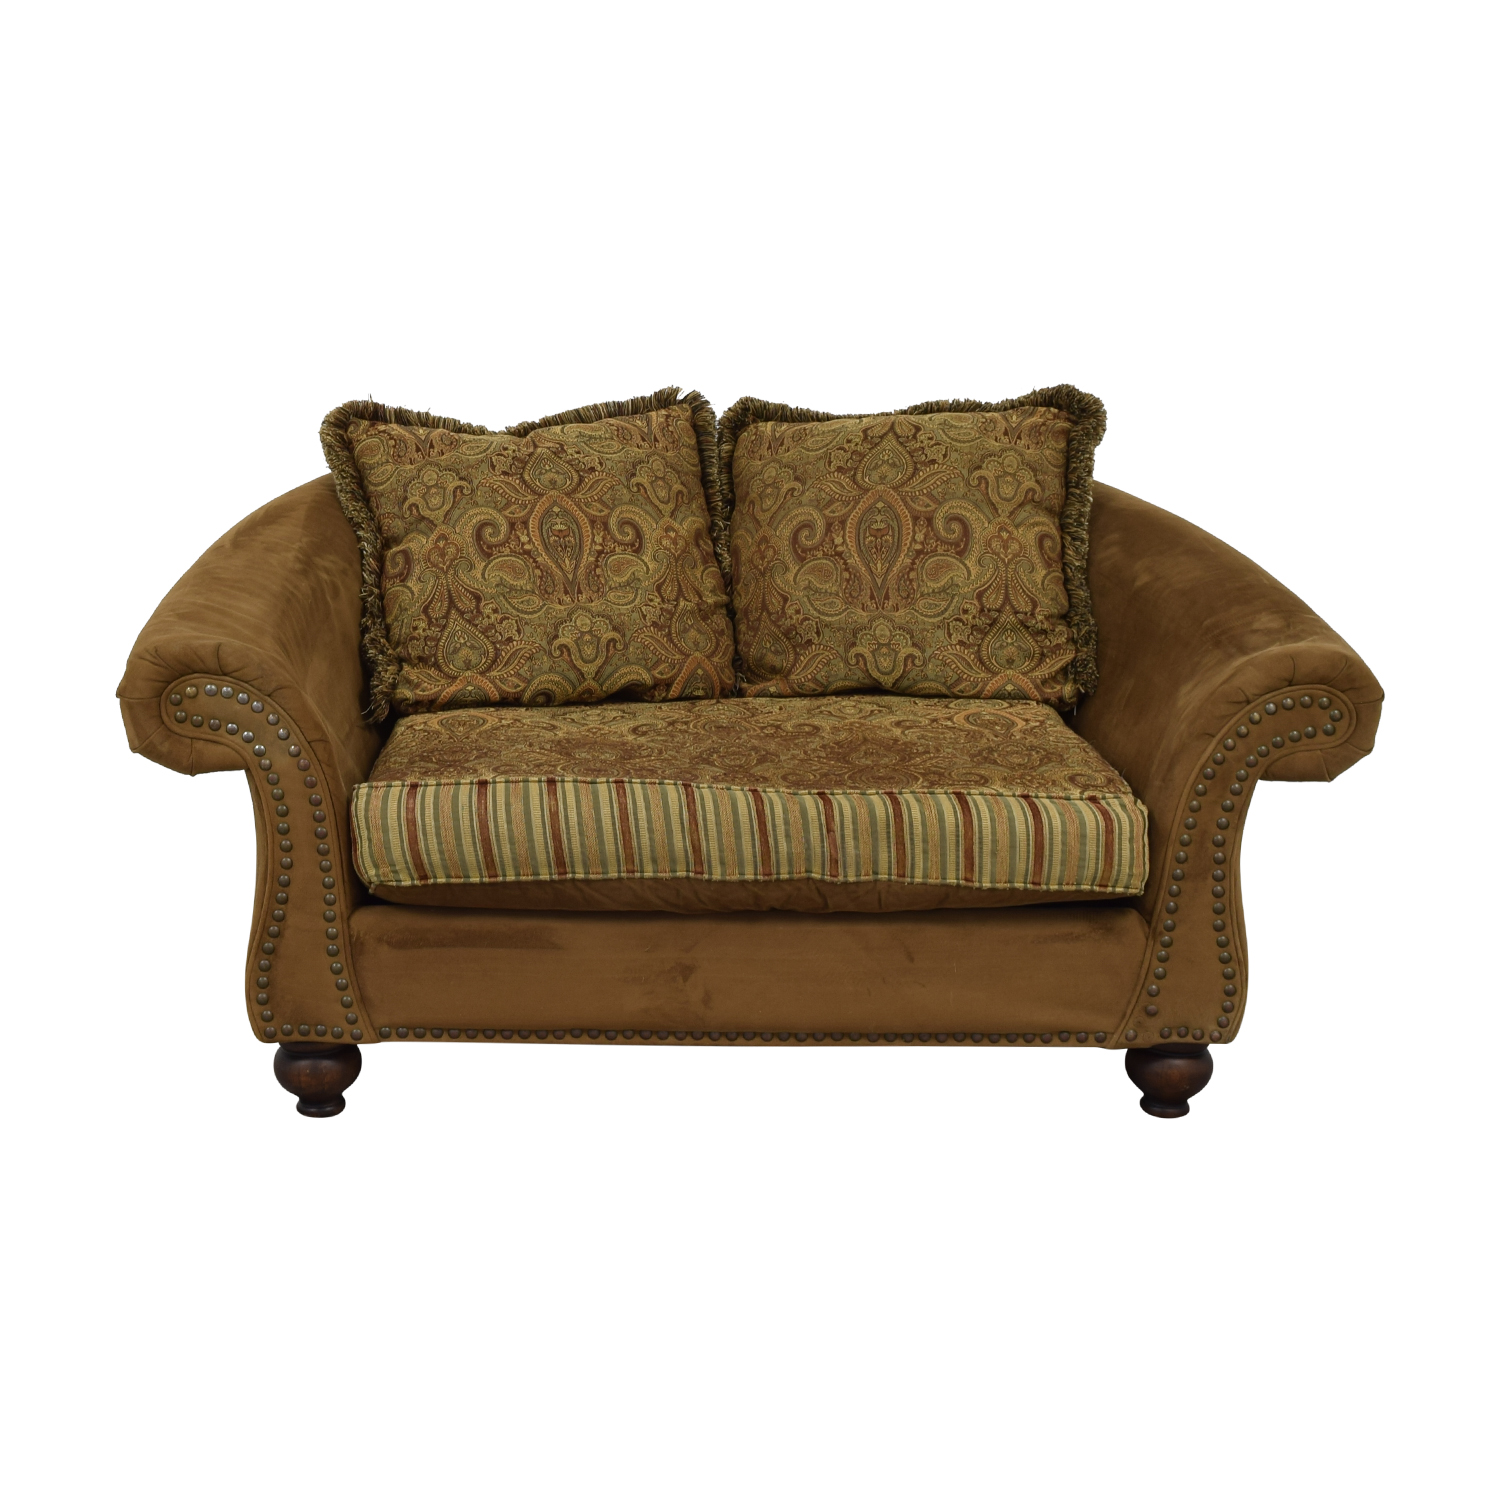 Cindy Crawford Home Cindy Crawford Home Microfiber Faux Suede Brown Nailhead Loveseat used